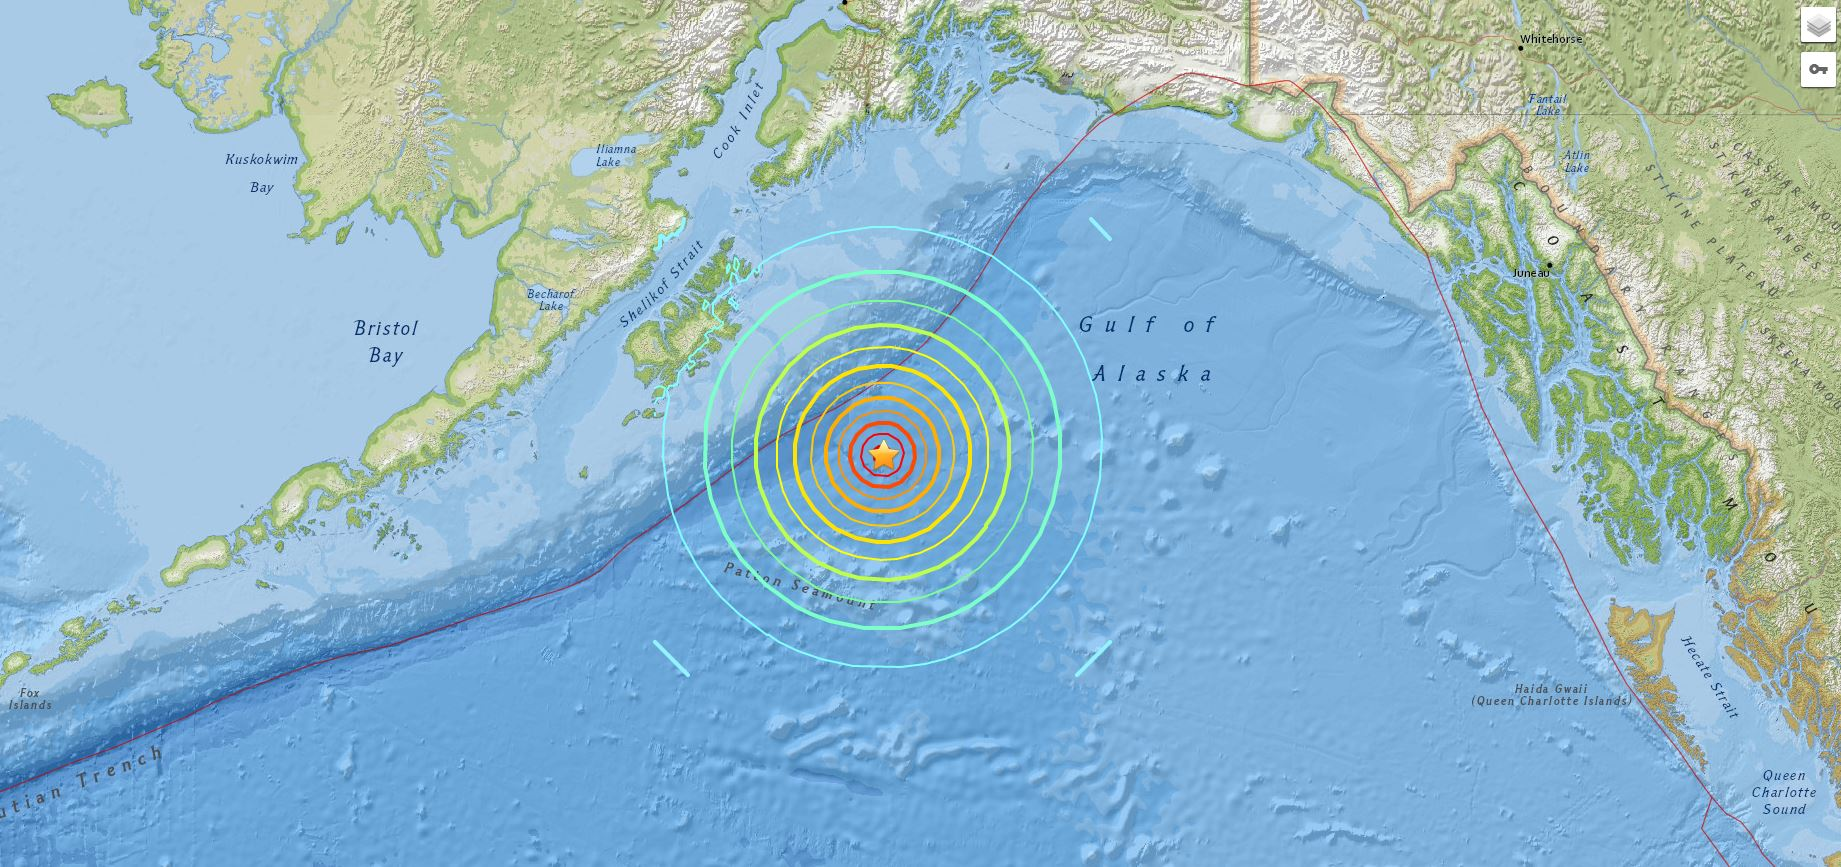 Map of Alaskan earthquake